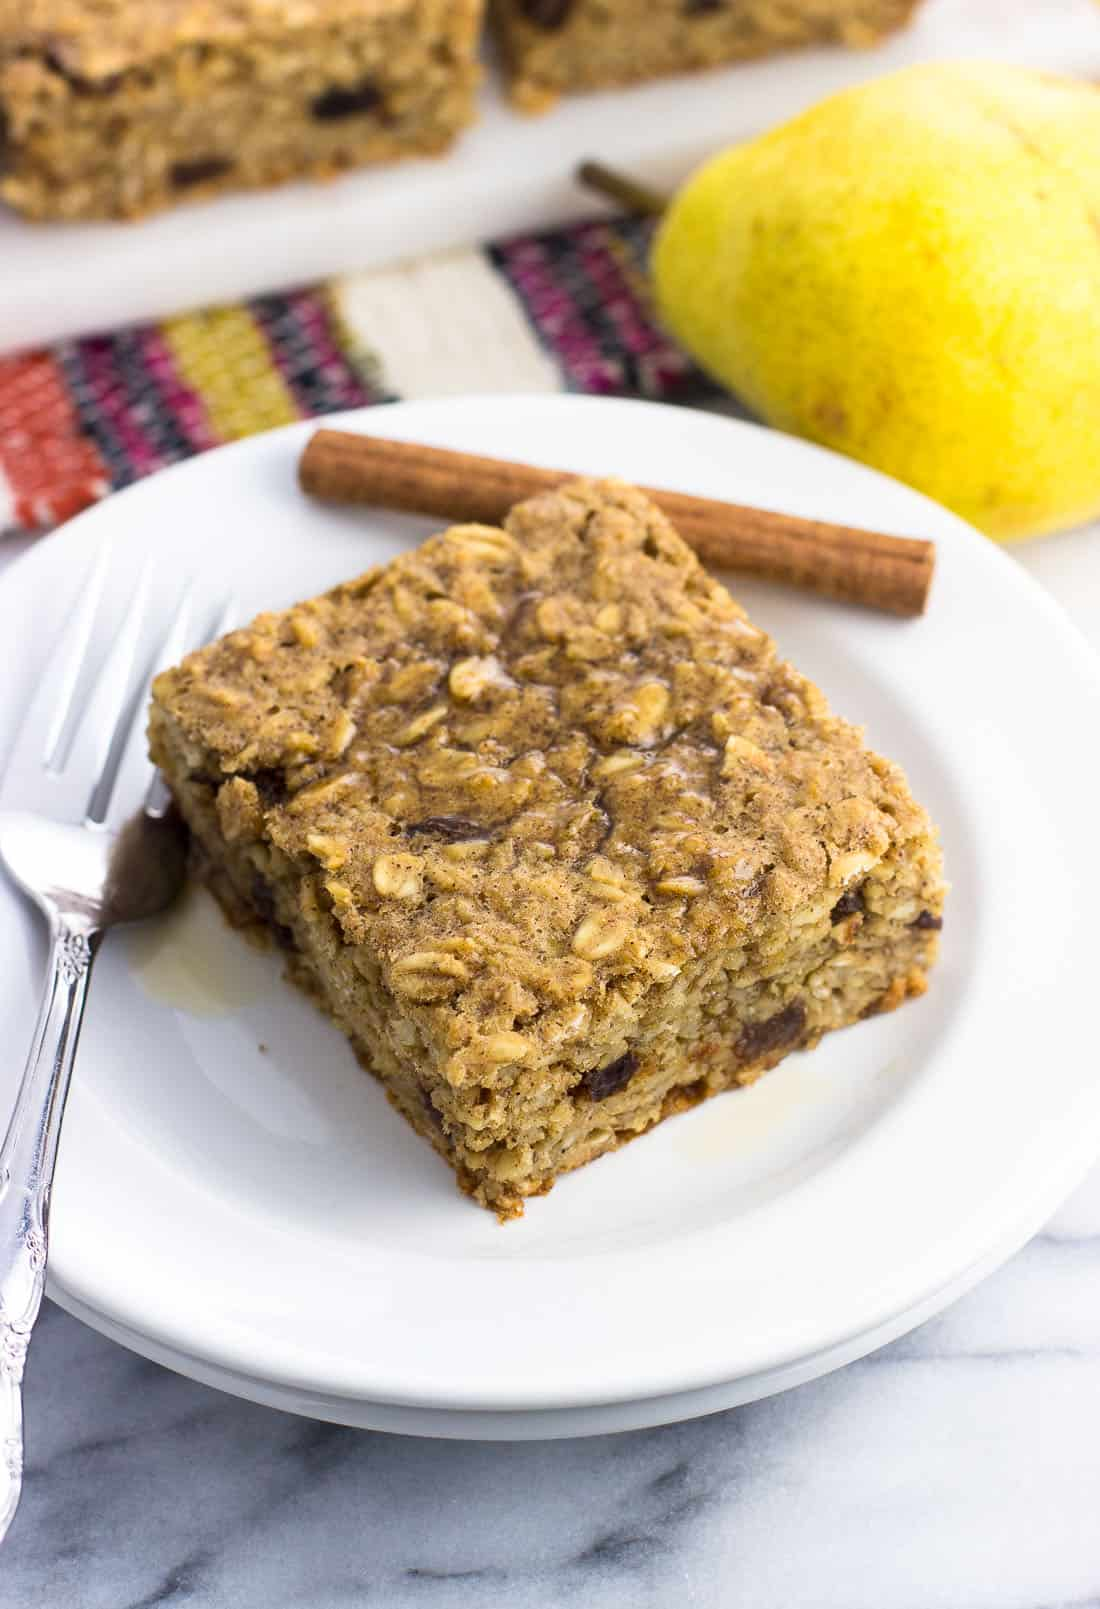 A square of peanut butter baked oatmeal on a small plate with a fork